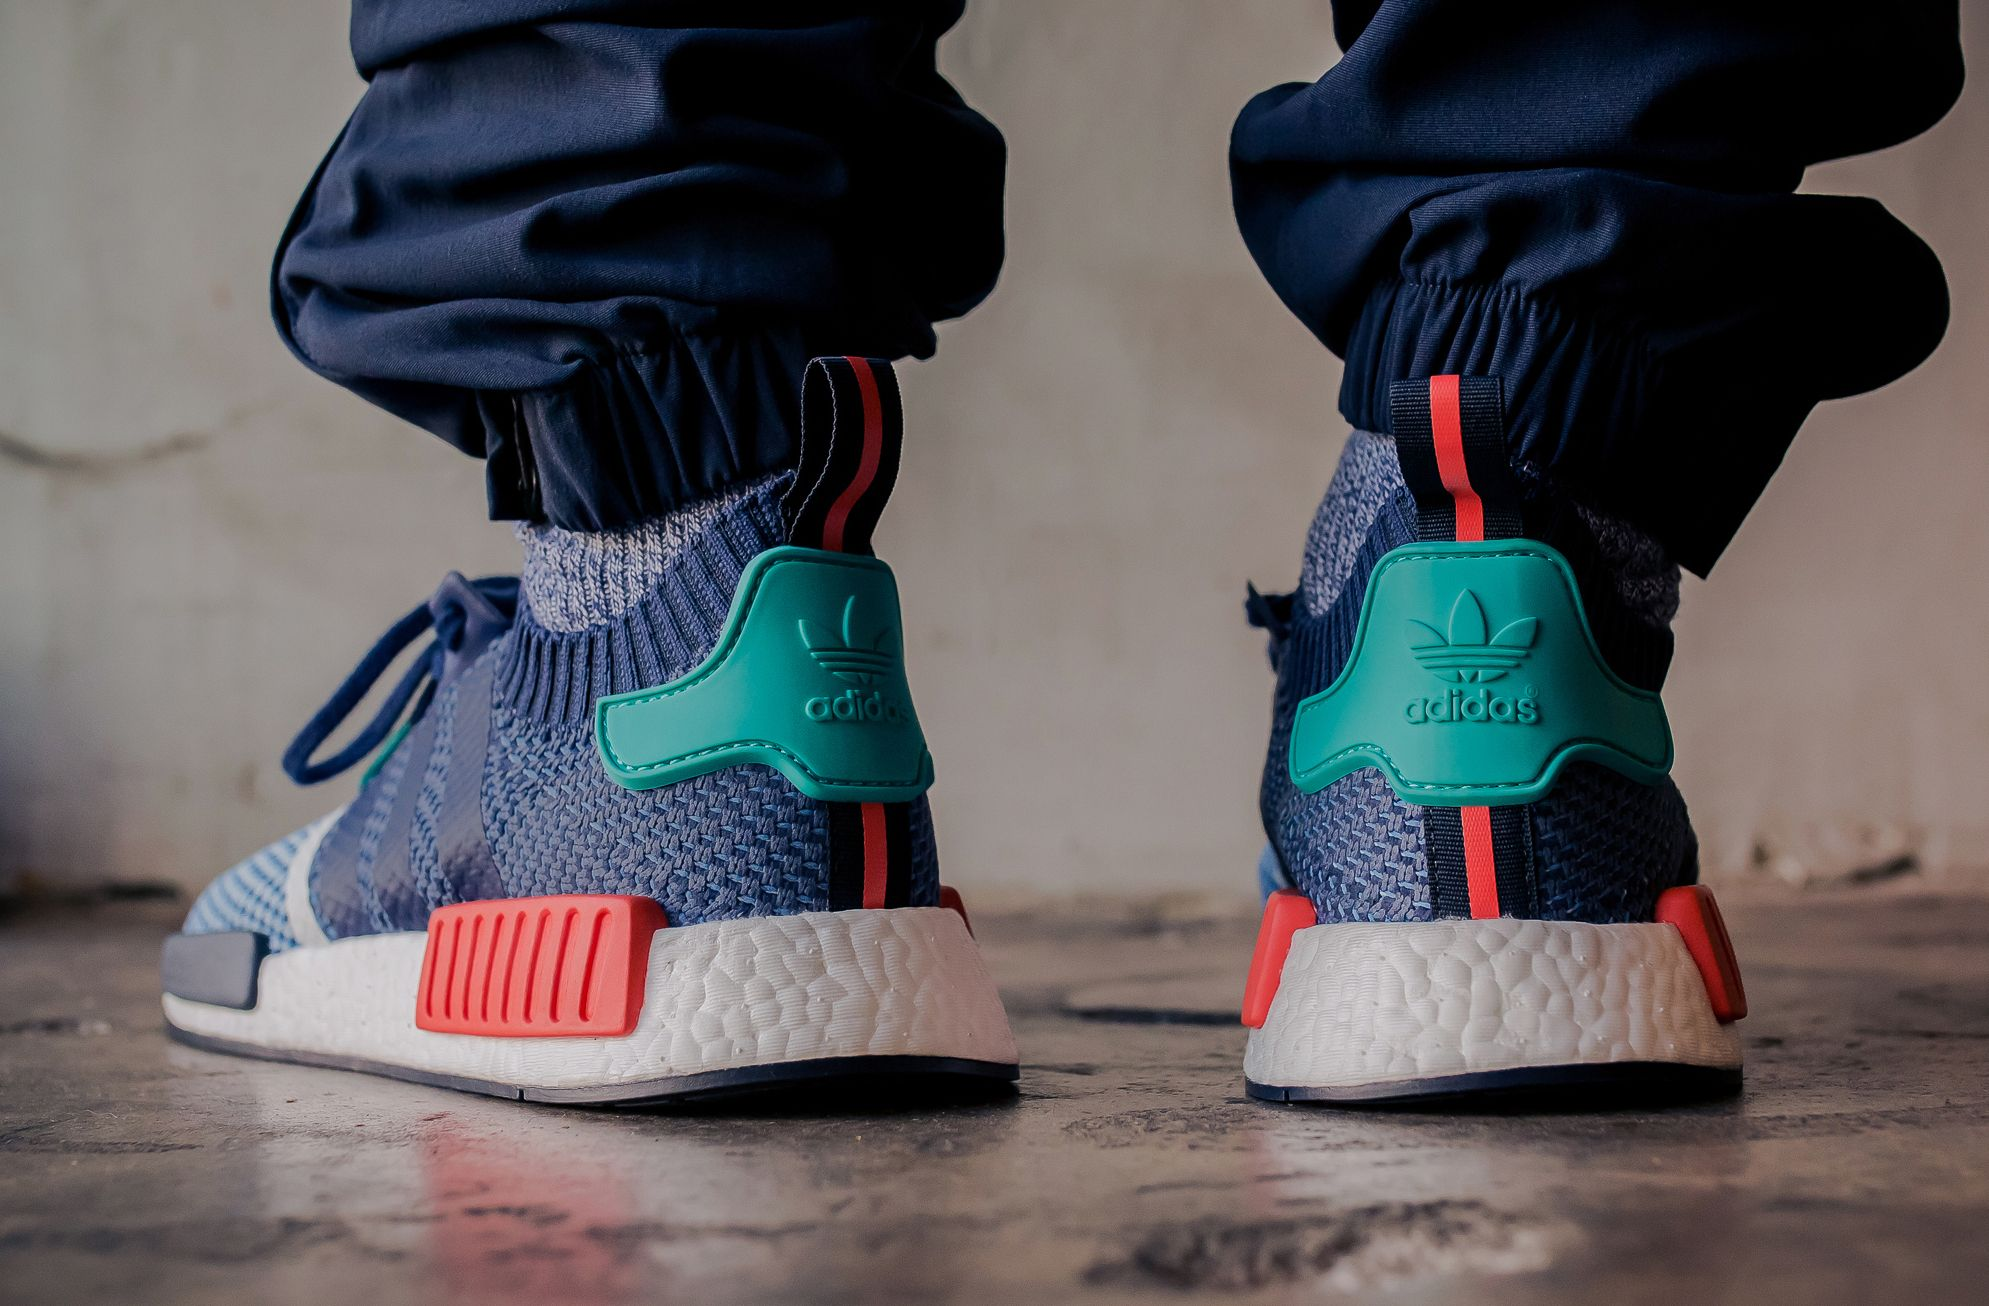 Packer Shoes Teams up With adidas Originals for Special Consortium NMD  Runner PK | Nmd, Adidas nmd and Adidas